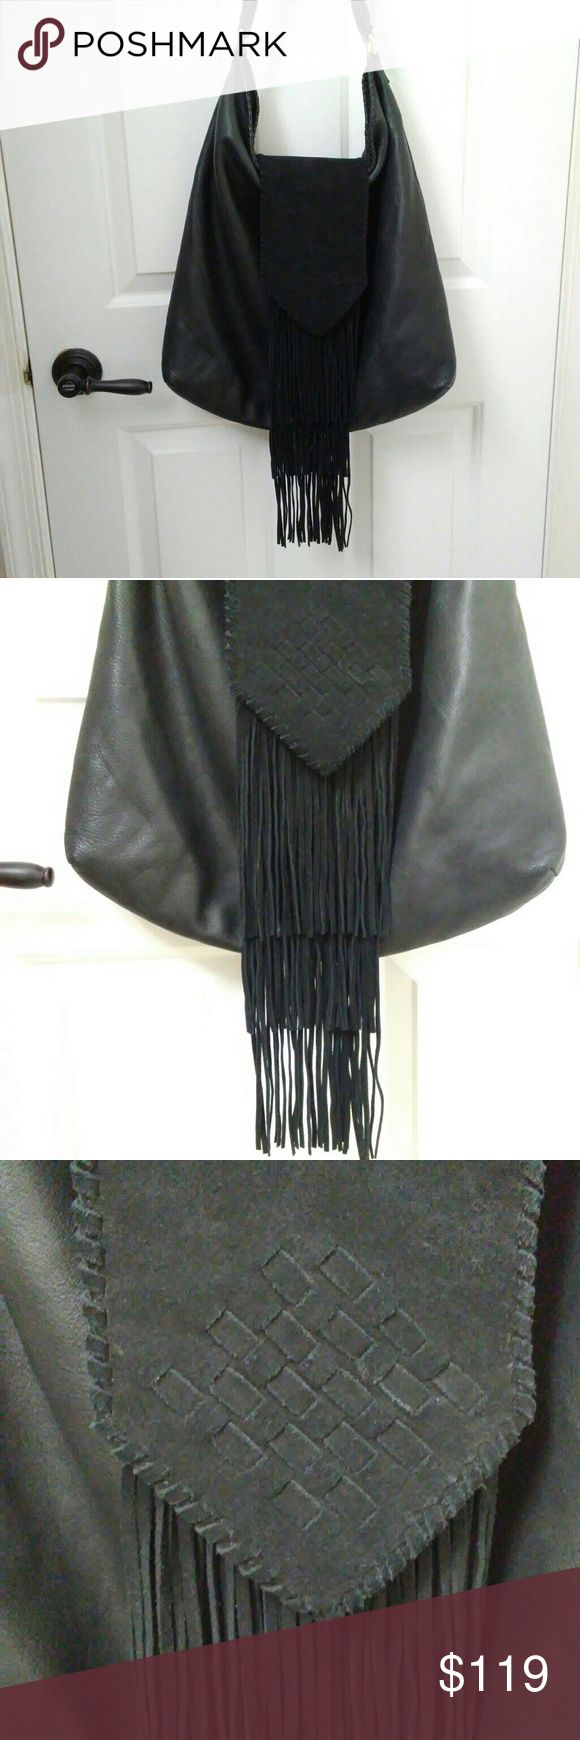 MARGOT Leather Purse Suede Fringe Festival Bag XL MARGOT Black Leather and Suede Fringe Hobo Festival Bag  Absolutely gorgeous black leather and suede bag by Margo. Western touches at the hem and strap combine effortlessly with the a hippie / festival vibe of the fringe and versatility Butter soft with a pebbled texture and crossover weave design on the suede flat. No top closure - the fringed suede flap keeps the bag closed. 2 small interior pouch pockets and 1 zipper pocket inside.…